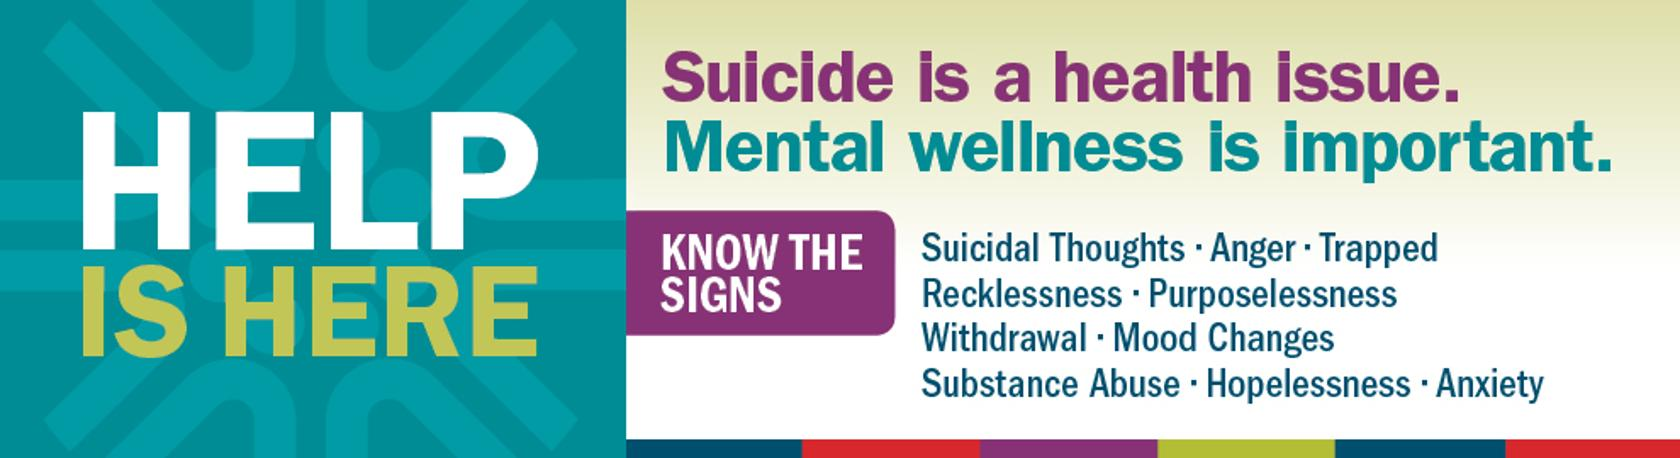 Help is Here! Suicide Prevention & Mental Wellness